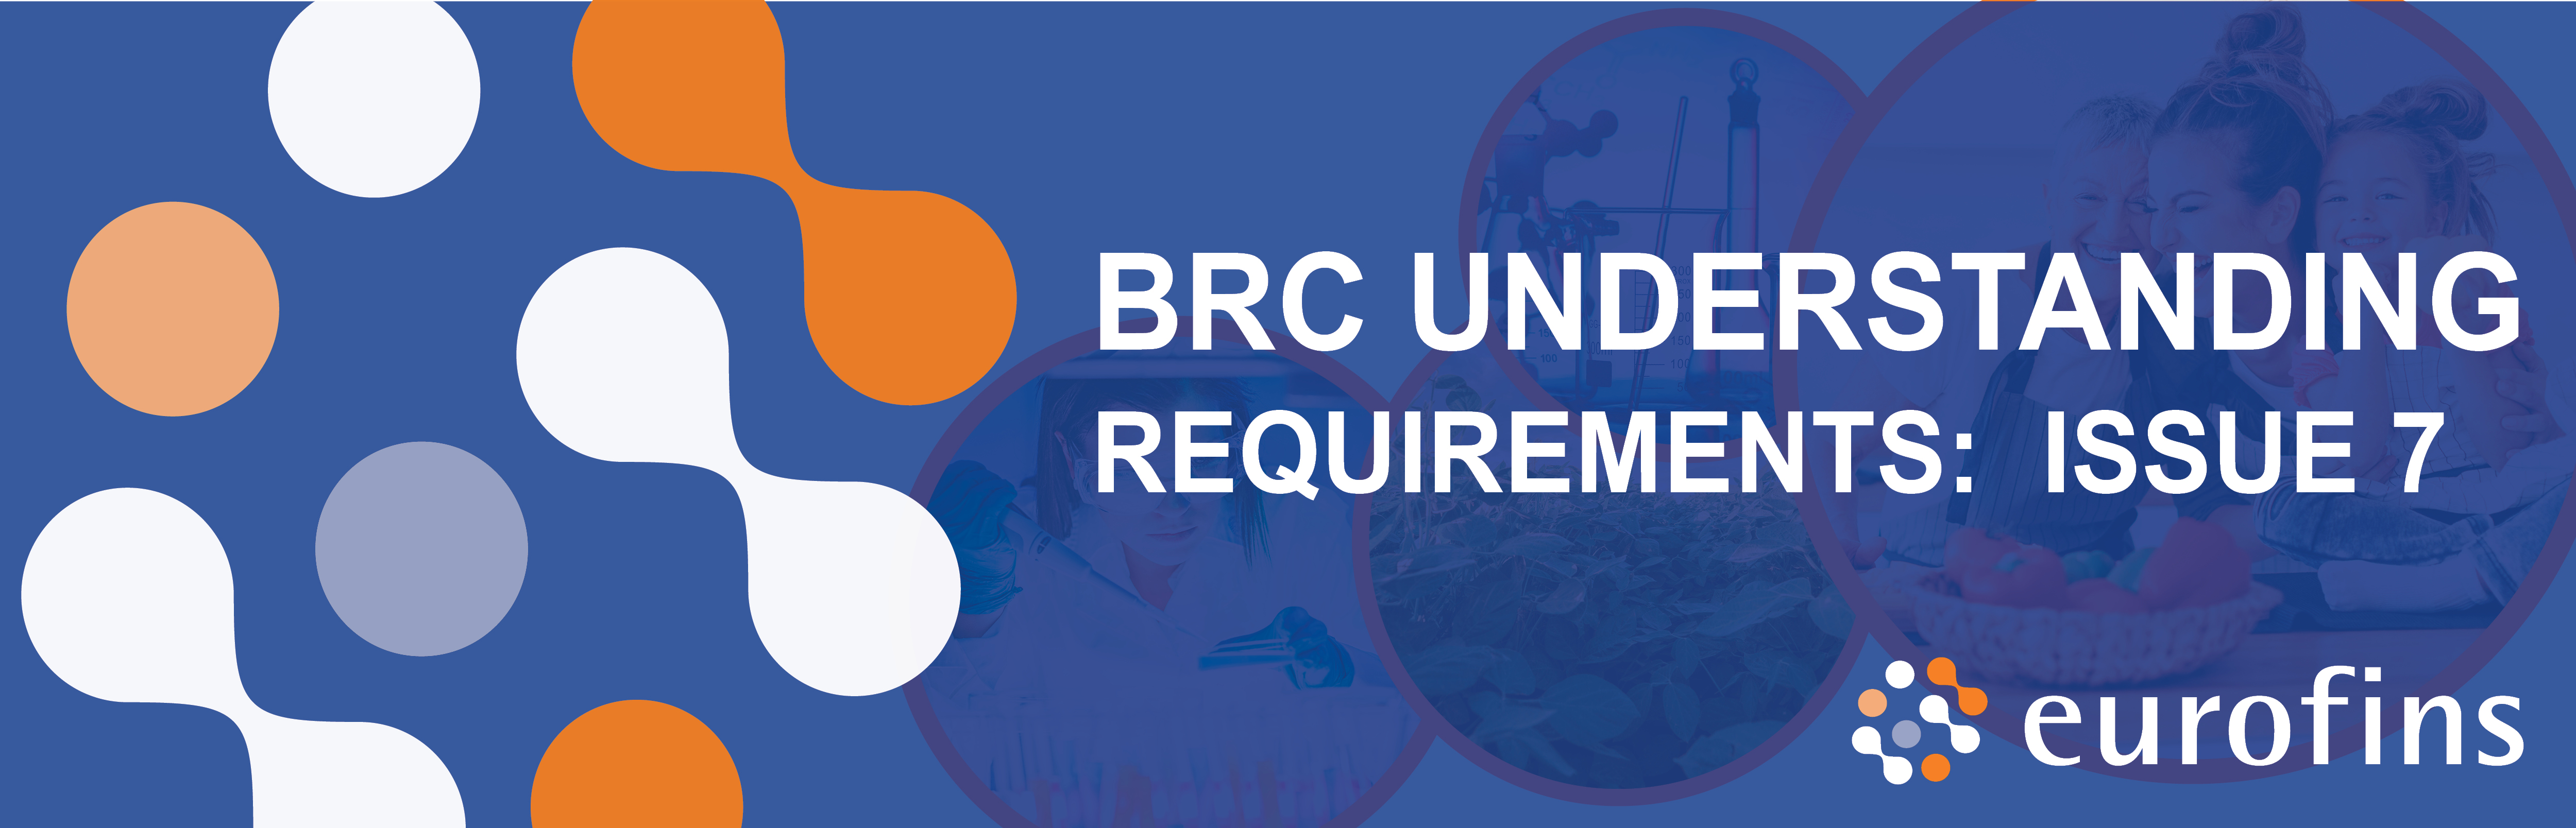 BRC Understanding Requirements Issue 7